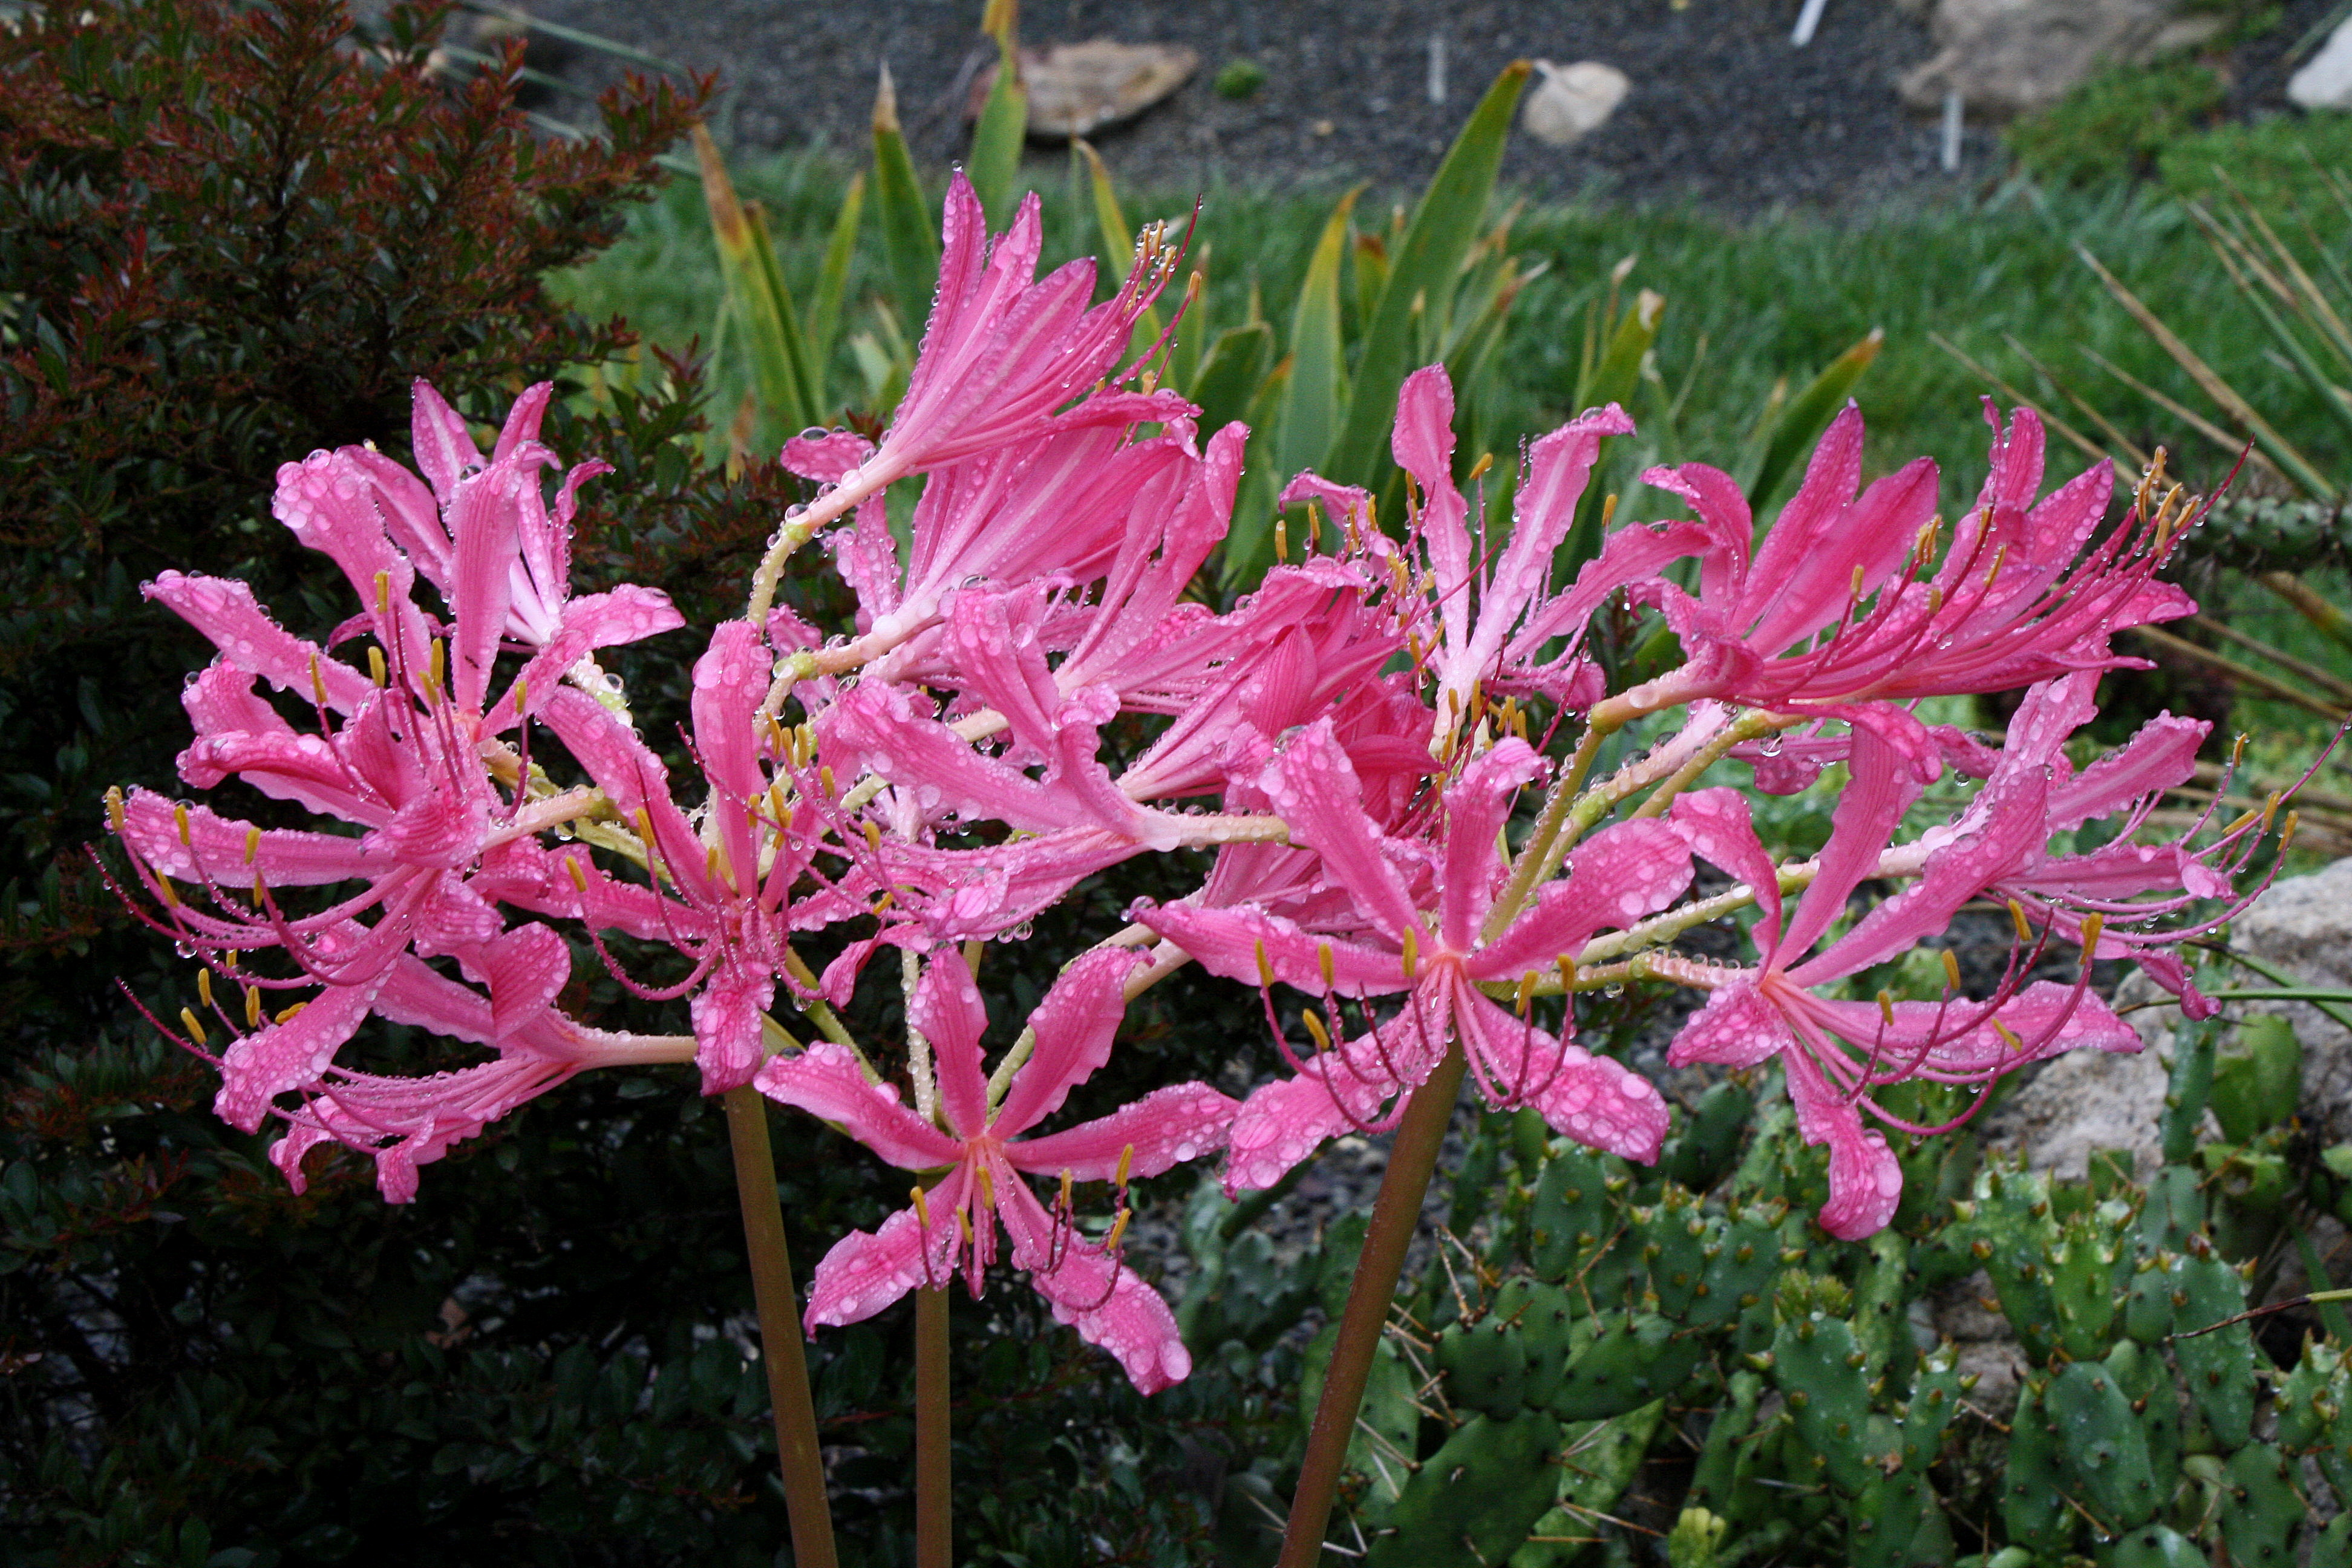 Lycoris x rosea 'Pink Ribbons' @ JLBG - a Jim Waddick import from China without a name, later assigned by JLBG/PDN